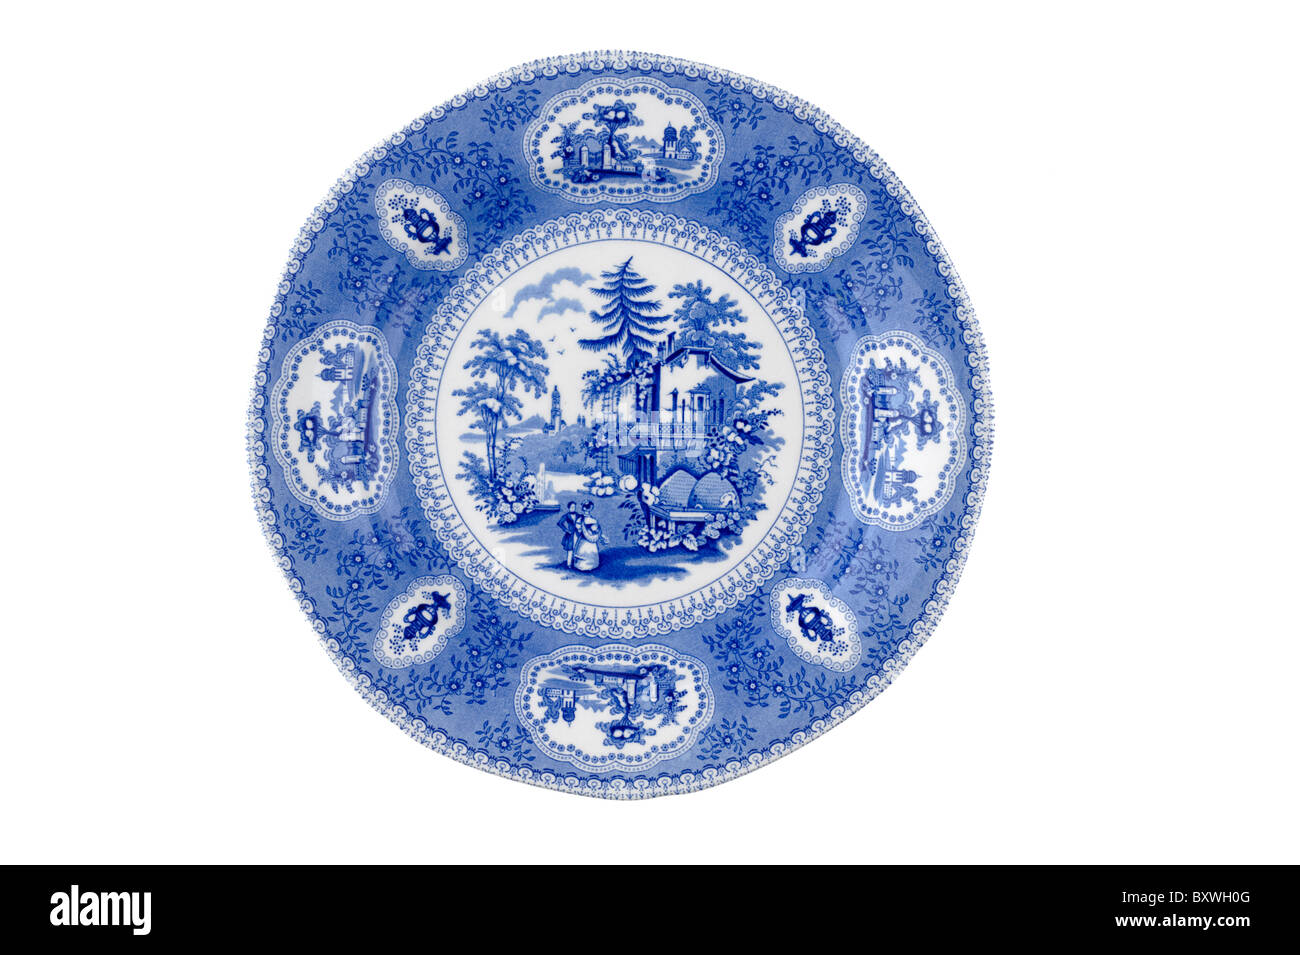 Blue and white patterned plate - Stock Image